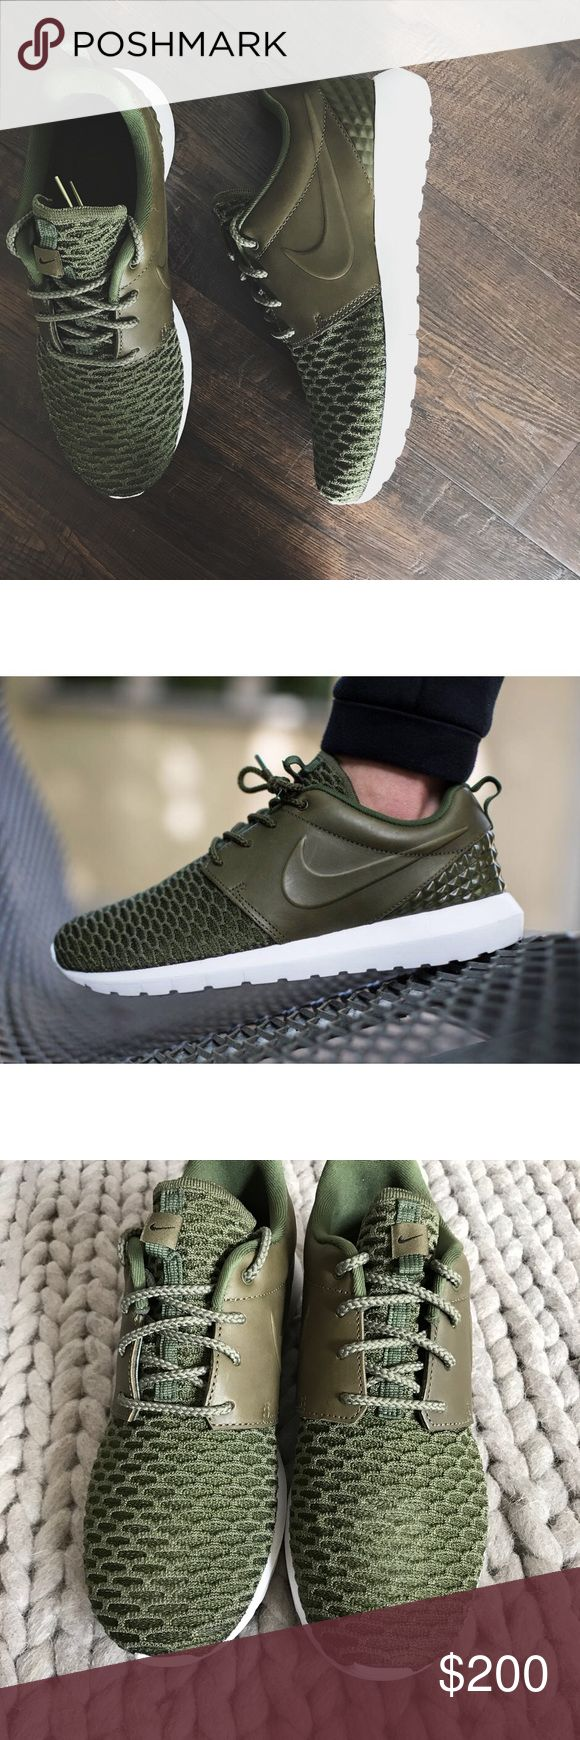 """Nike Roshe Leather + Flyknit Sneakers •Premium Roshe sneakers in """"Rough Green"""". Extremely rare size.  •This is a unisex shoe and they're a Men's 6.5/Women's 8. Best for a normal to wide width foot.  •New in box, no lid.  •NO TRADES/HOLDS/PAYPAL/MERC/VINTED/NONSENSE. Nike Shoes Sneakers"""